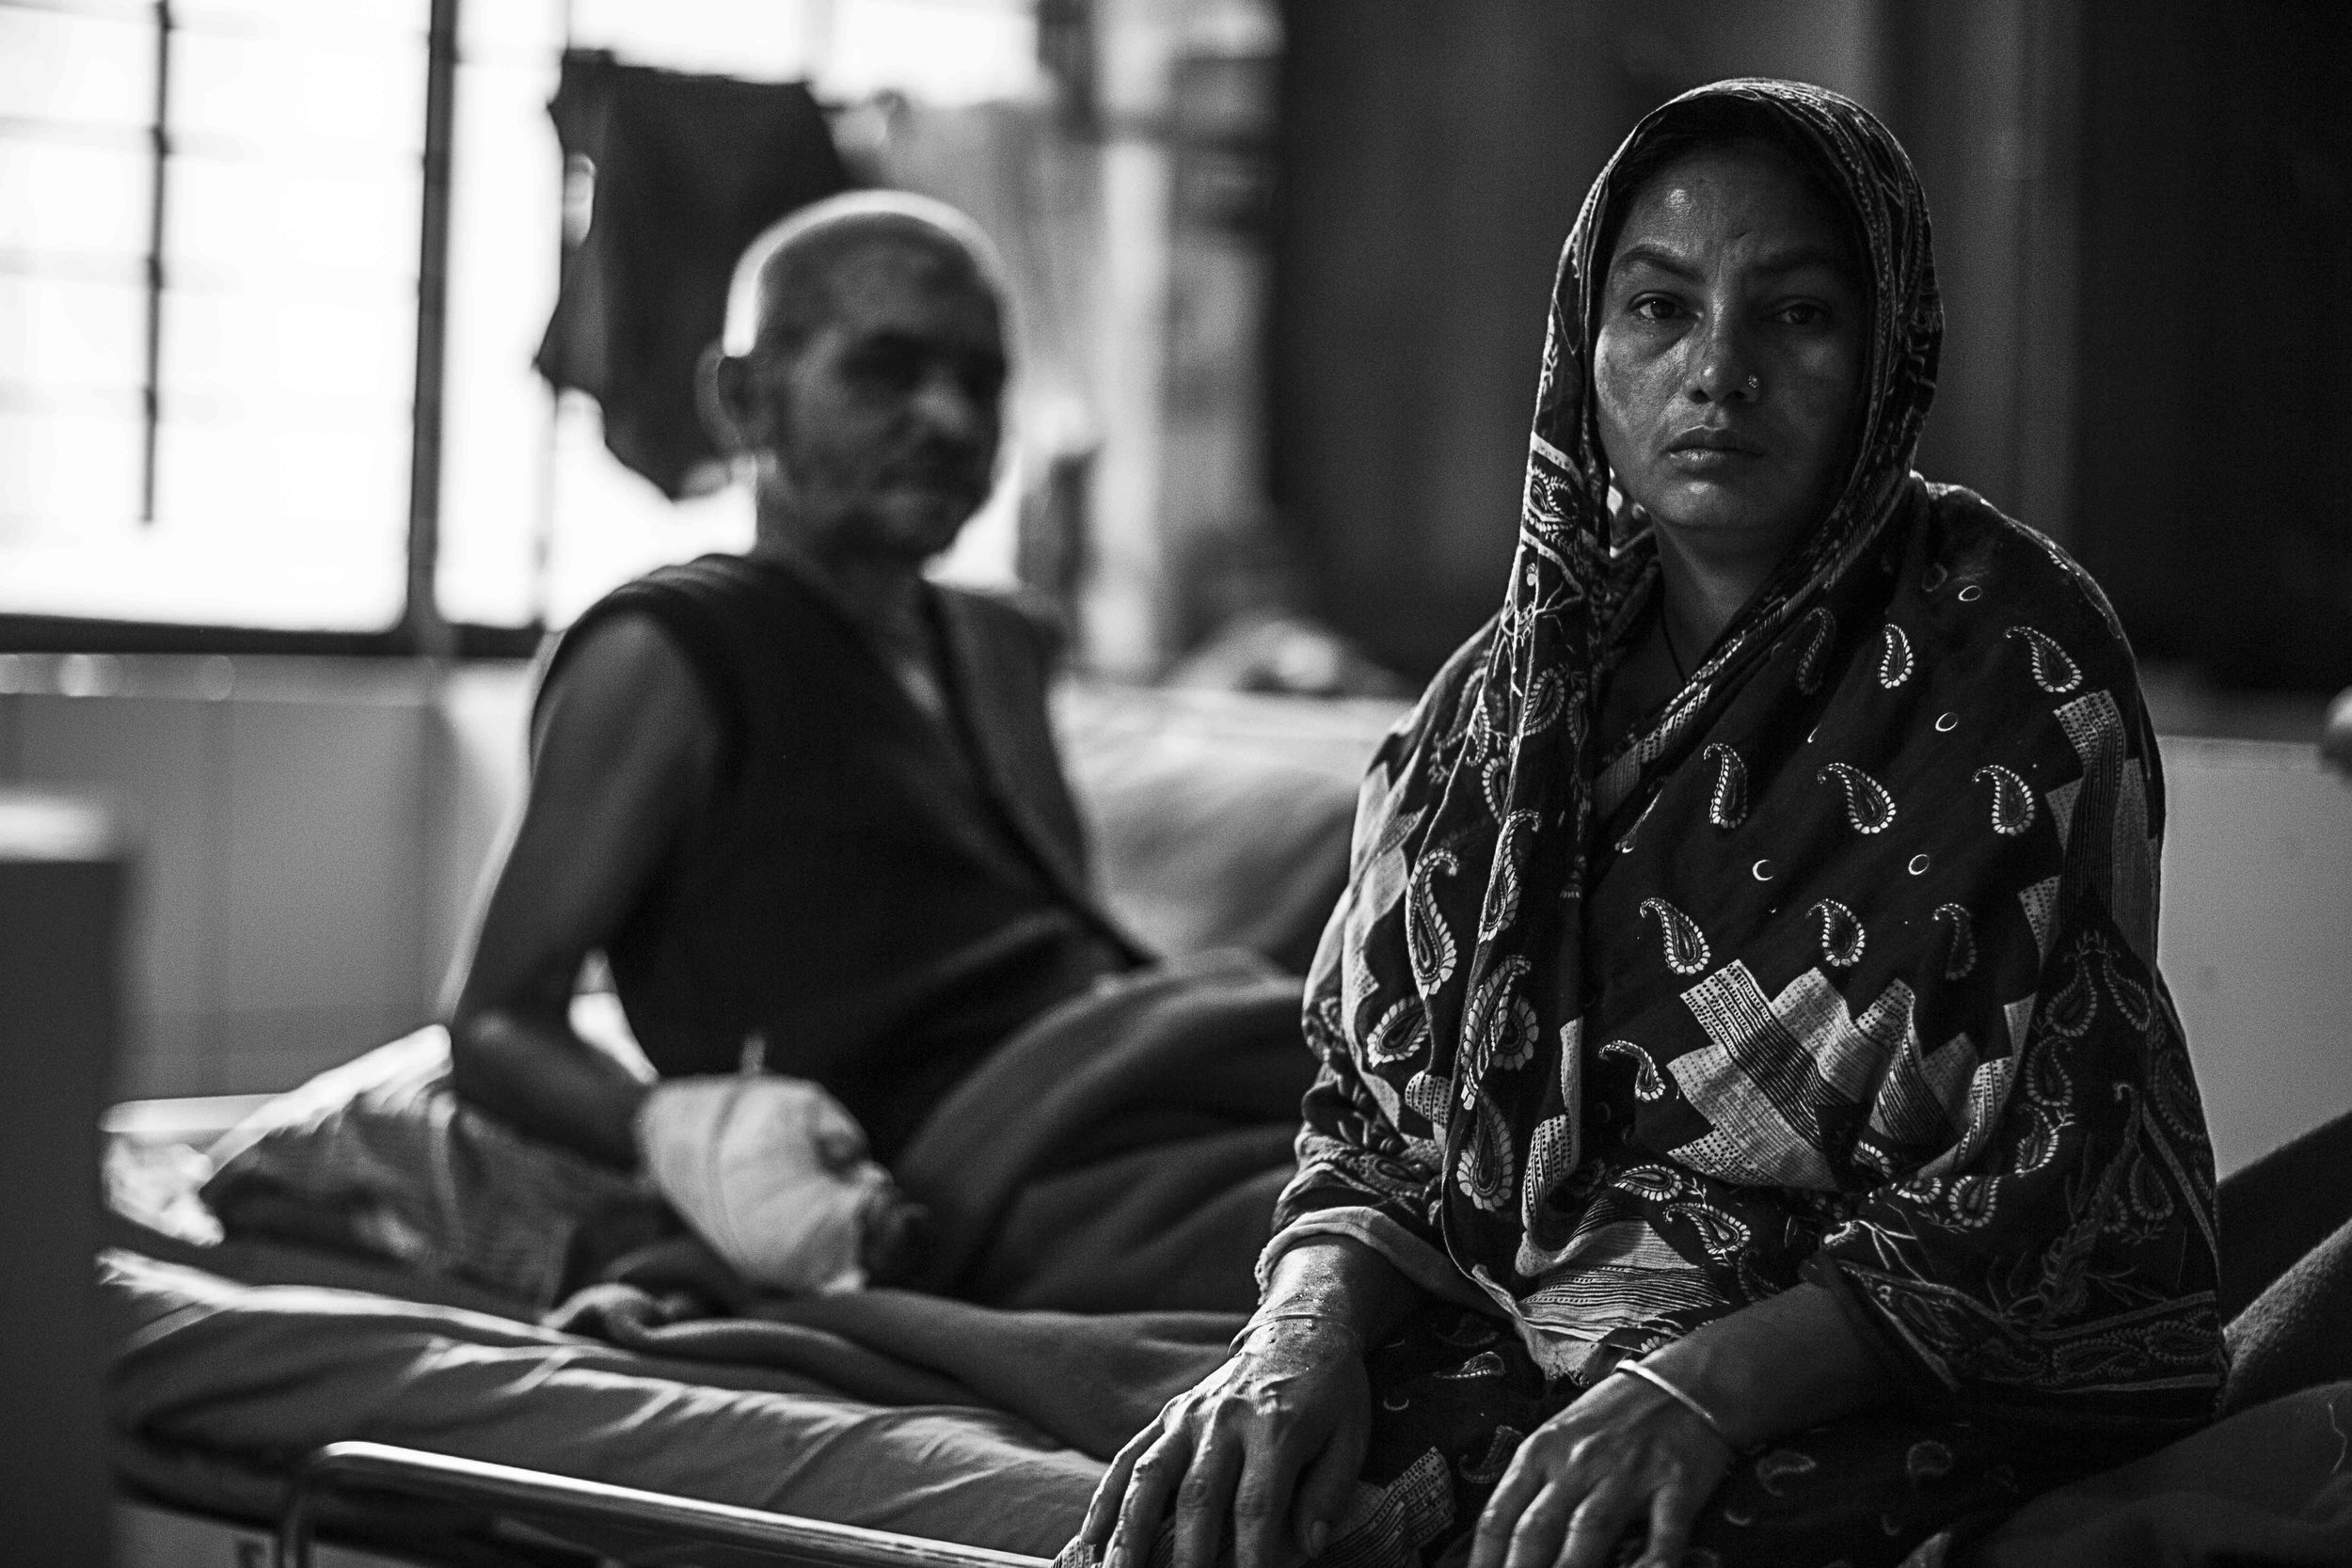 Sahira Khatun sits and waits patiently on her husband's bed. Days are long within the walls of DMCH.